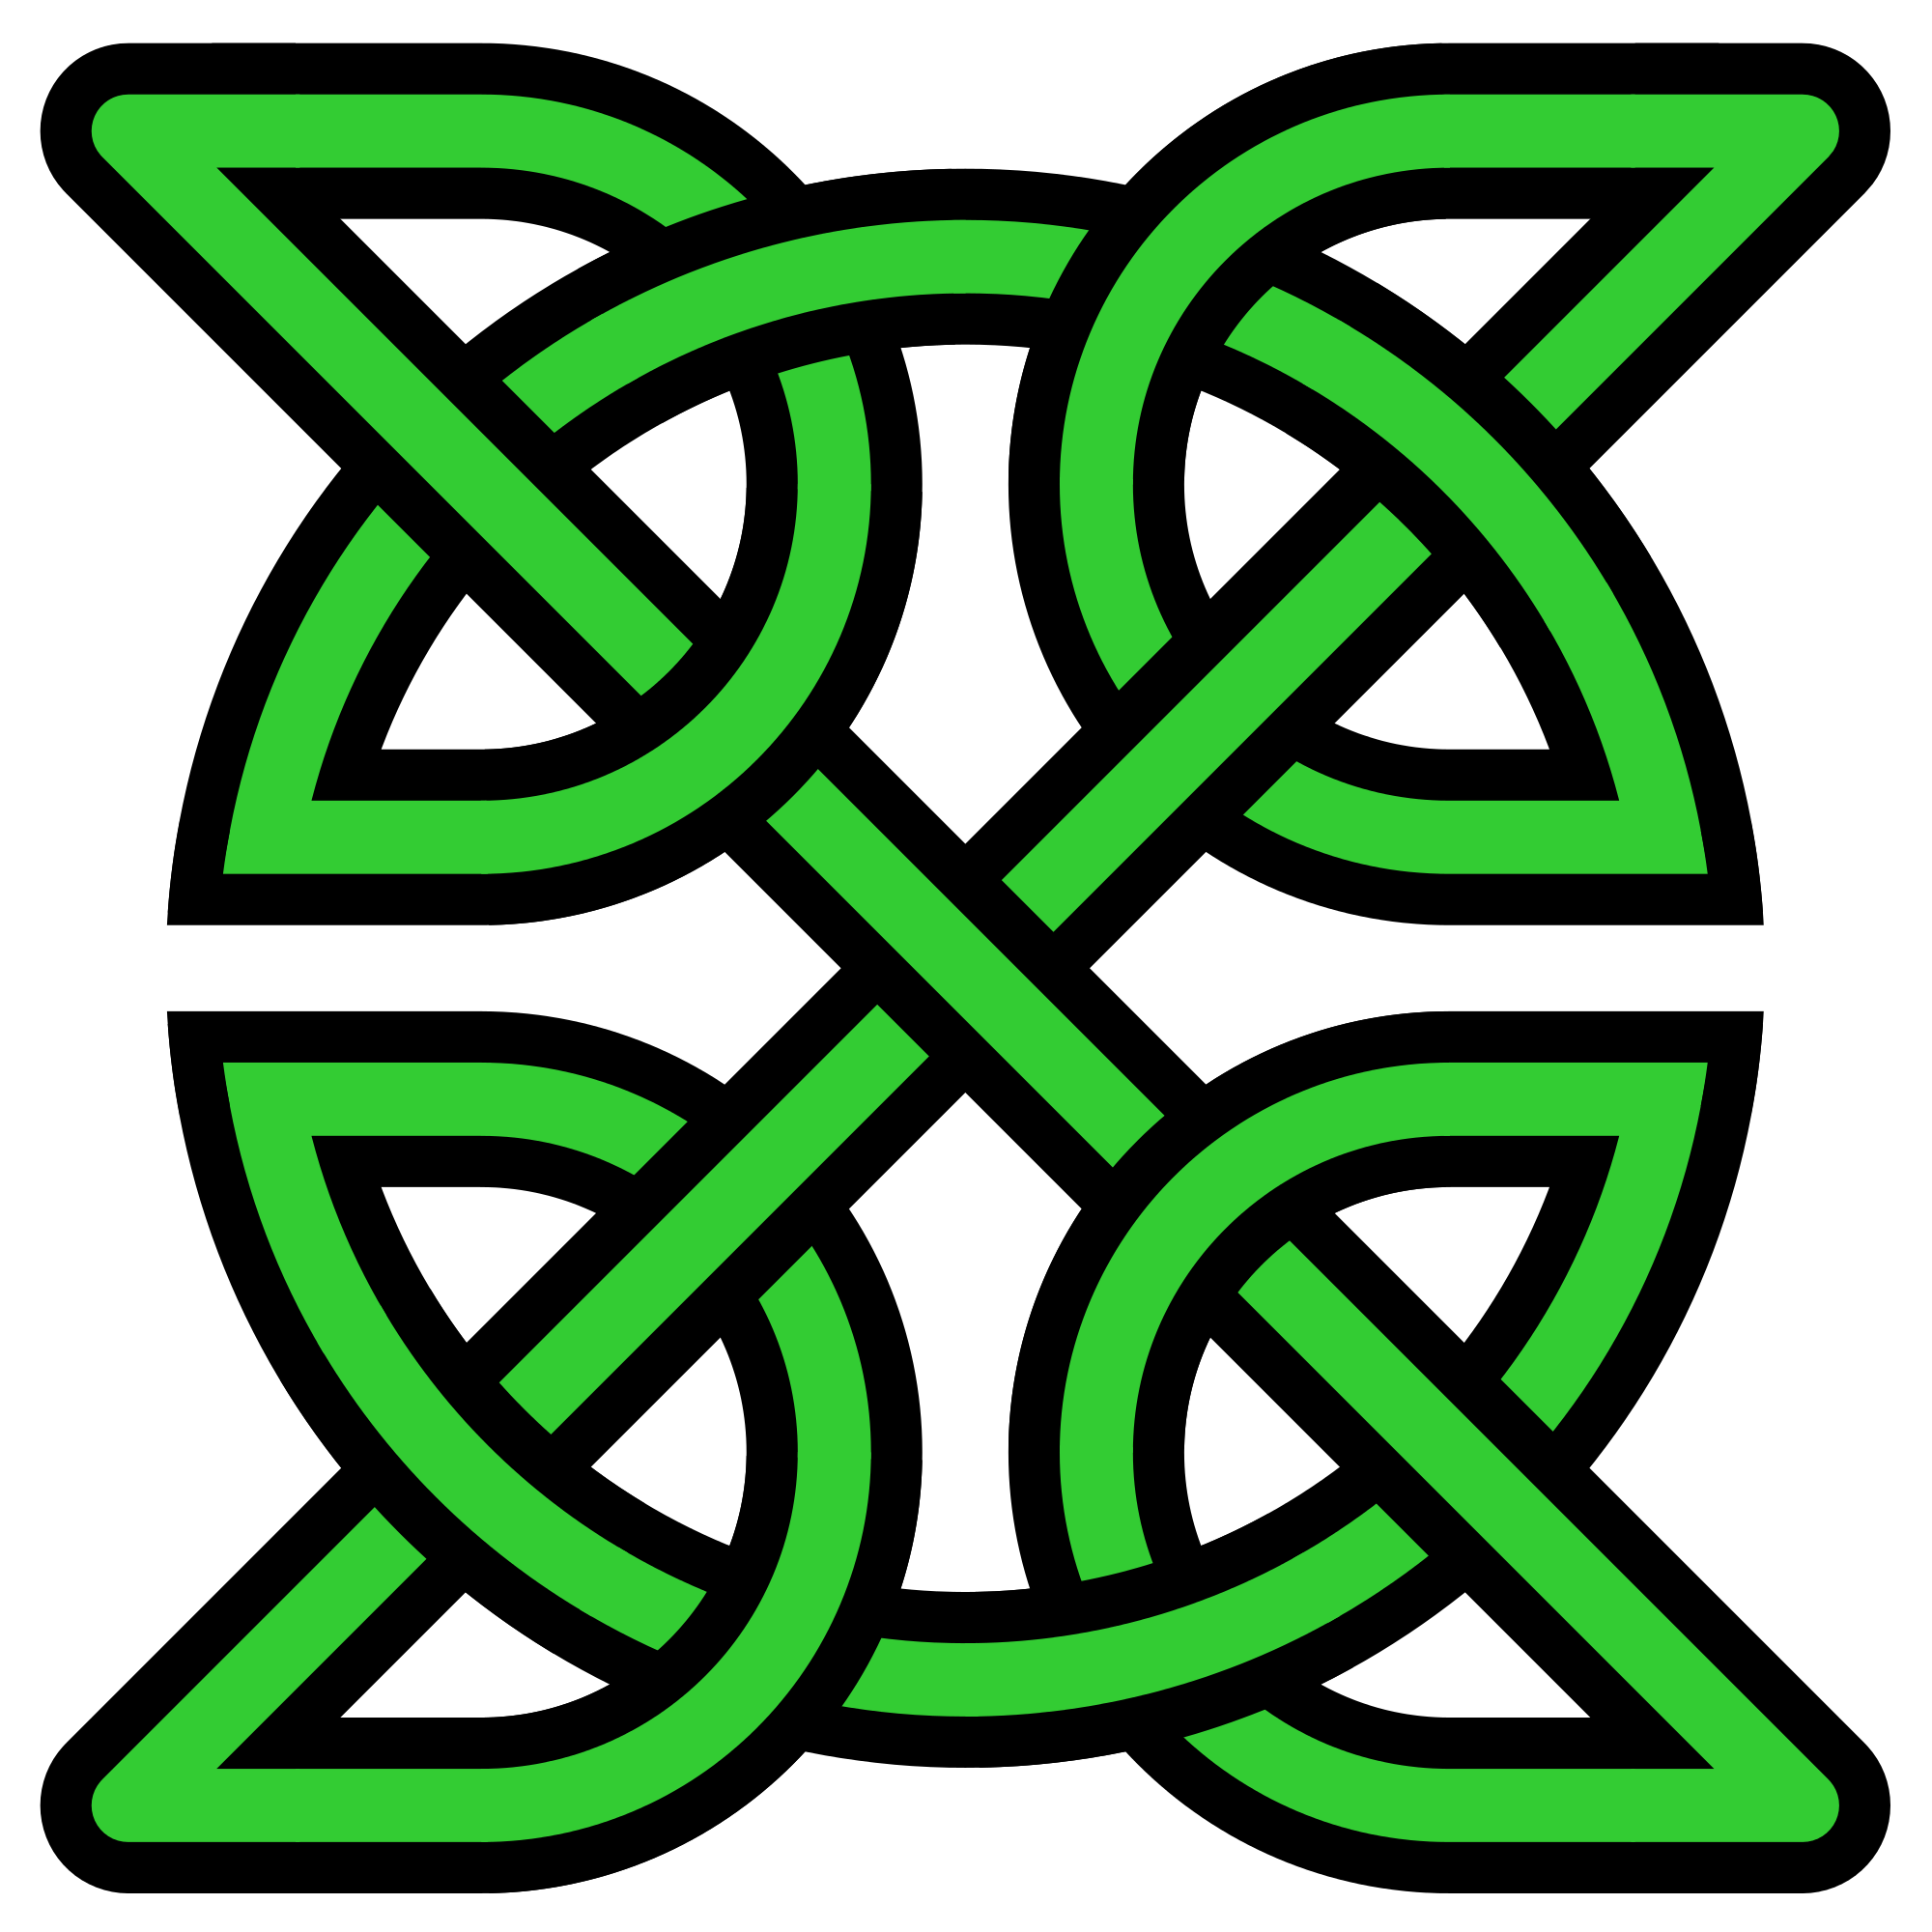 Green celtic cross png. File knot insquare transparentbg